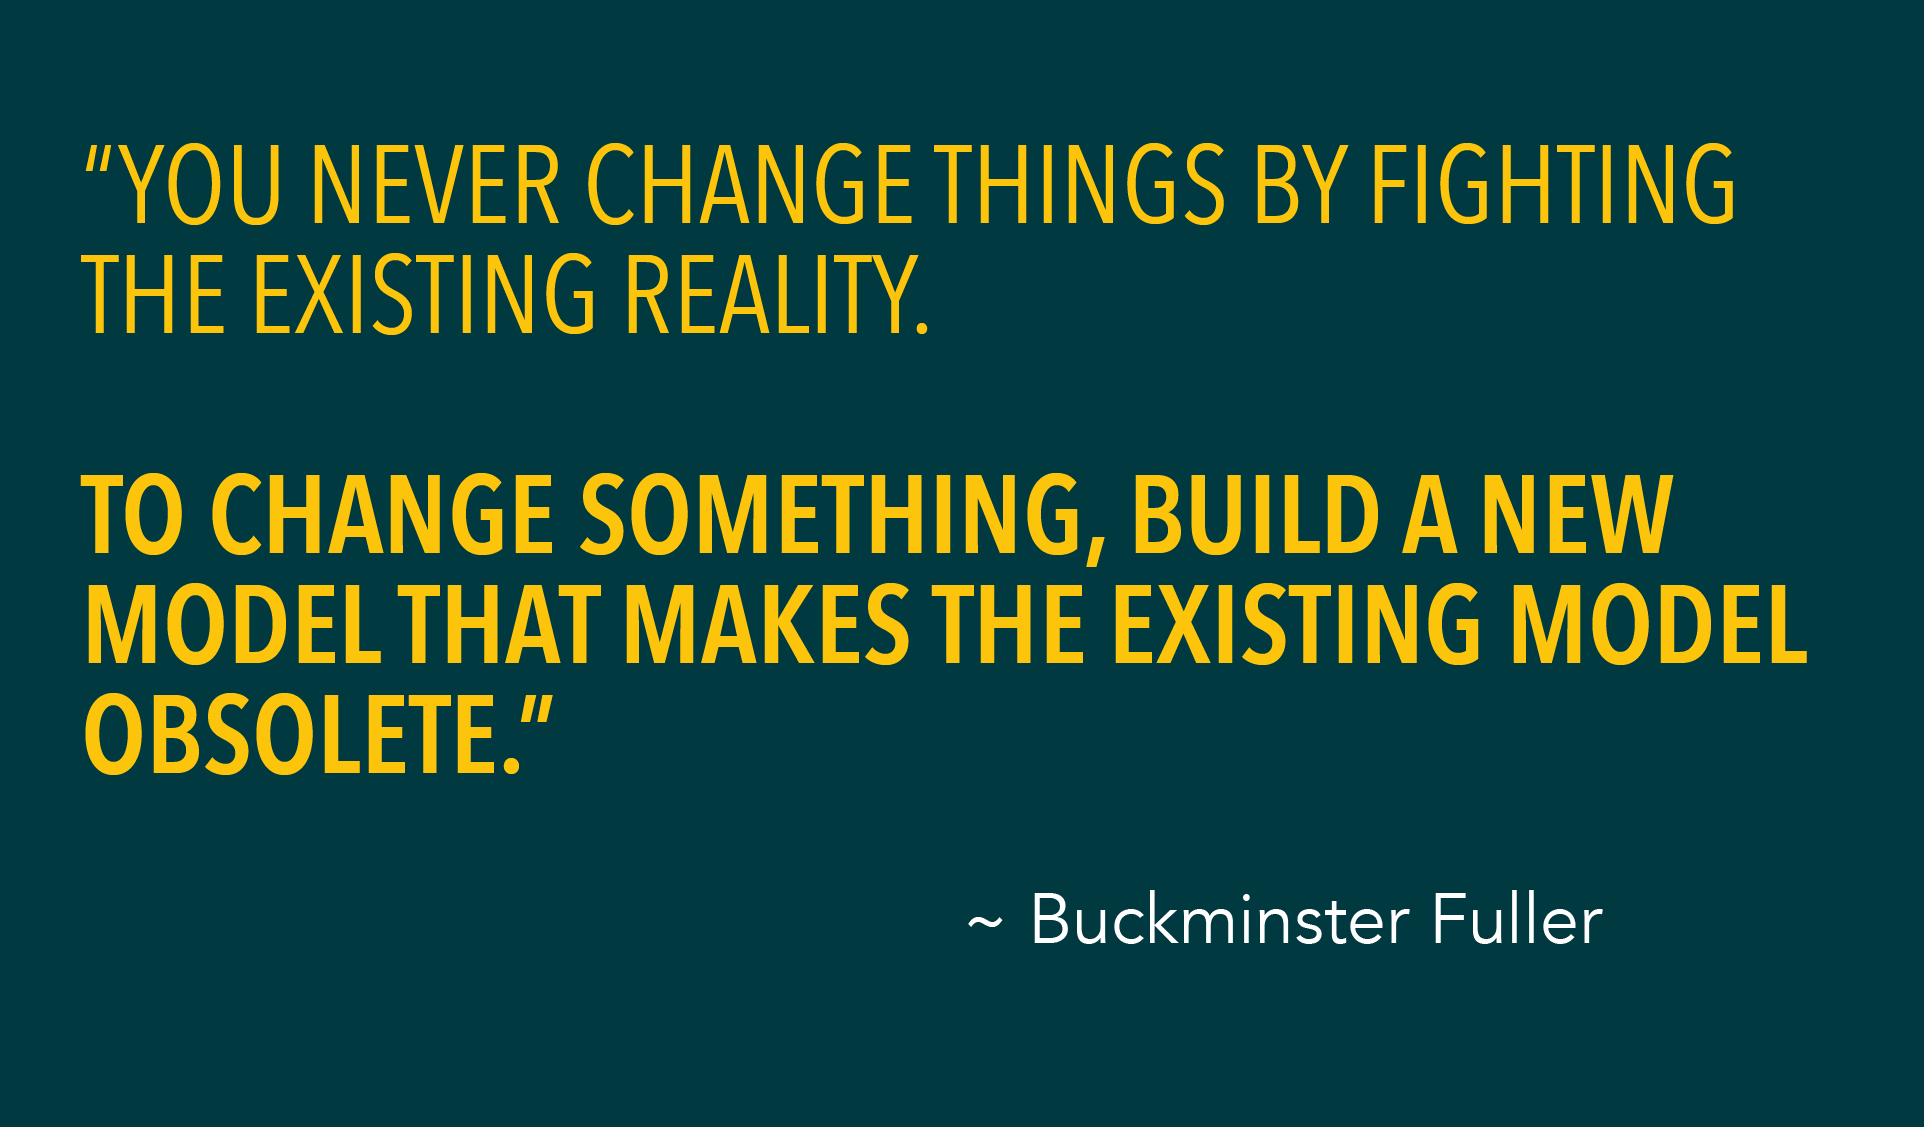 """YOU NEVER CHANGE THINGS BY FIGHTING THE EXISTING REALITY. TO CHANGE SOMETHING, BUILD A NEW MODEL THAT MAKES THE EXISTING MODEL OBSOLETE."""